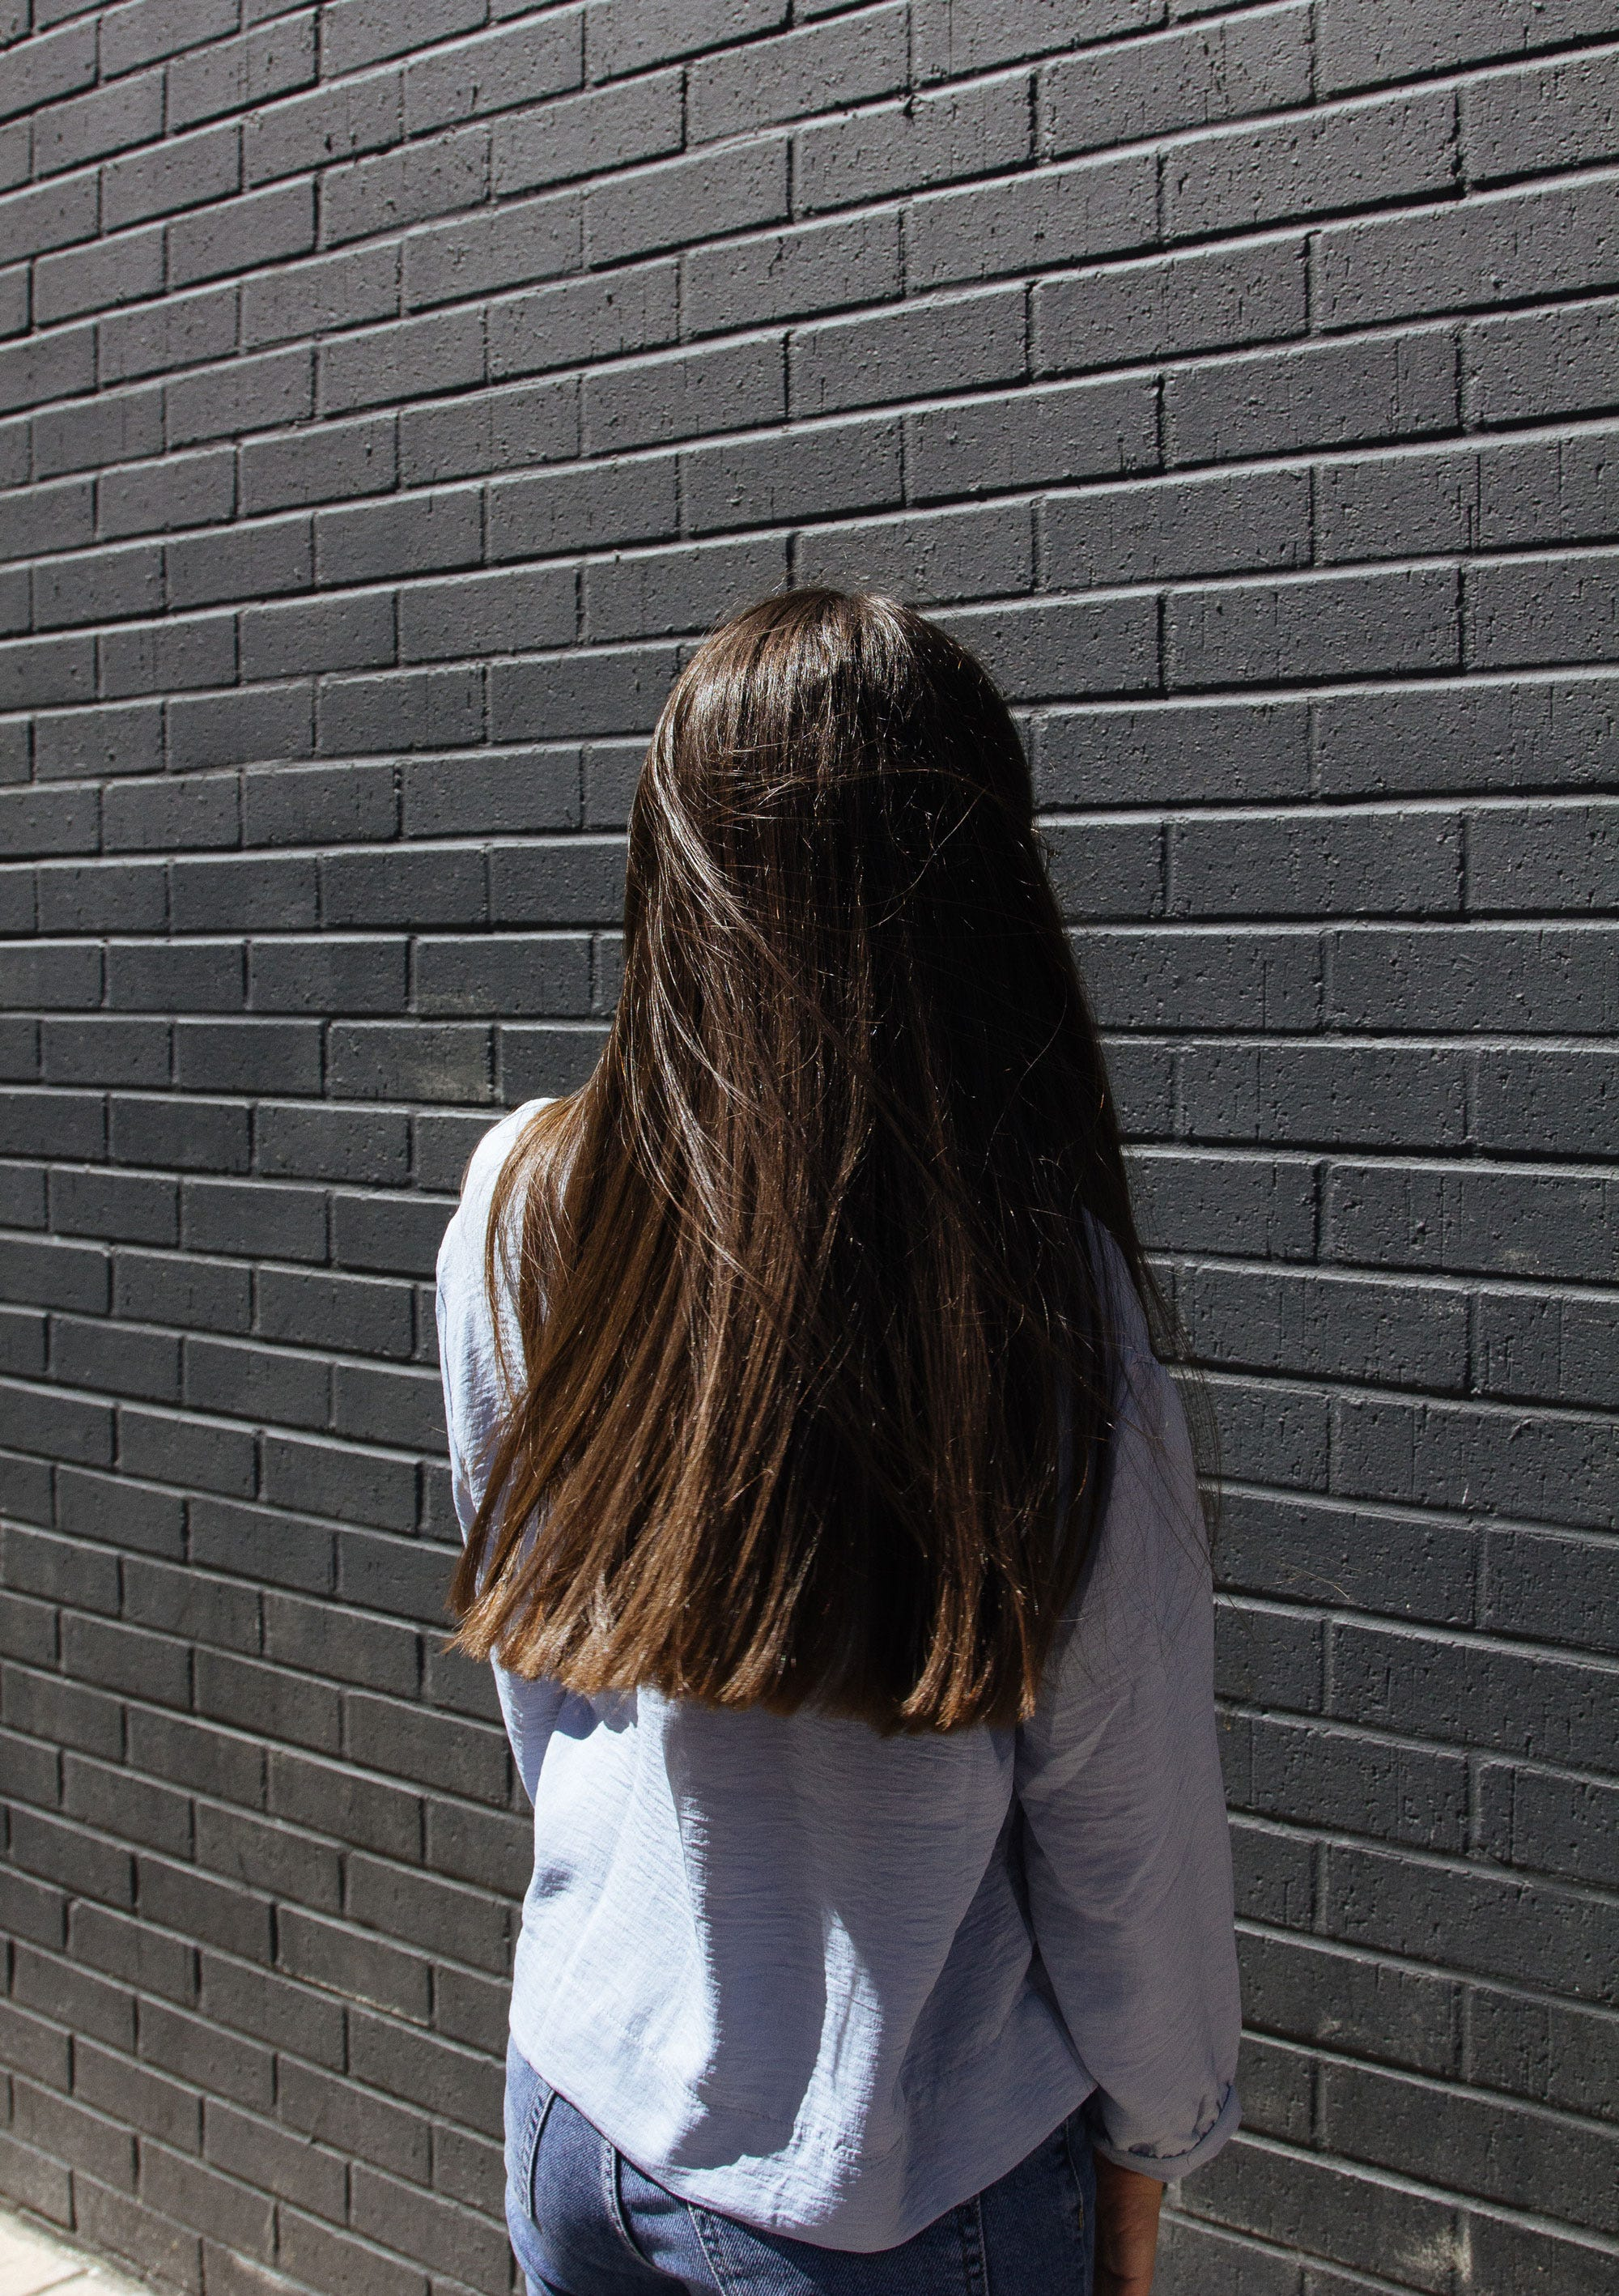 How Straightening Hair Treatments Cost Me My Identity